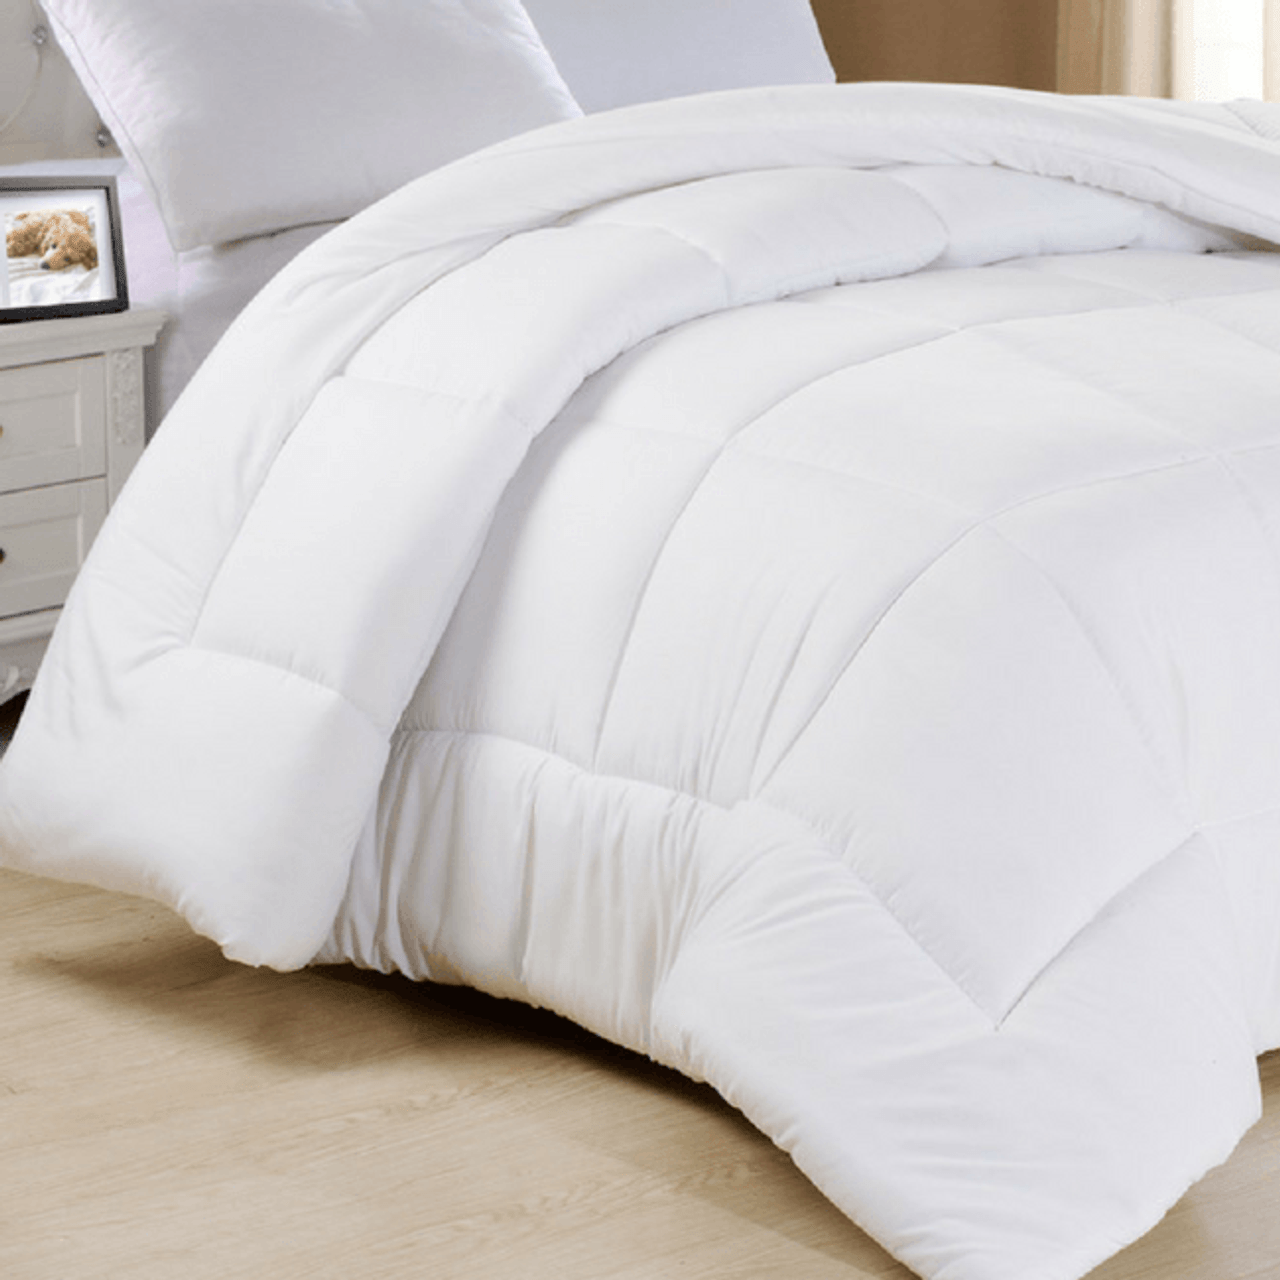 How to Wash the Wool Comforter